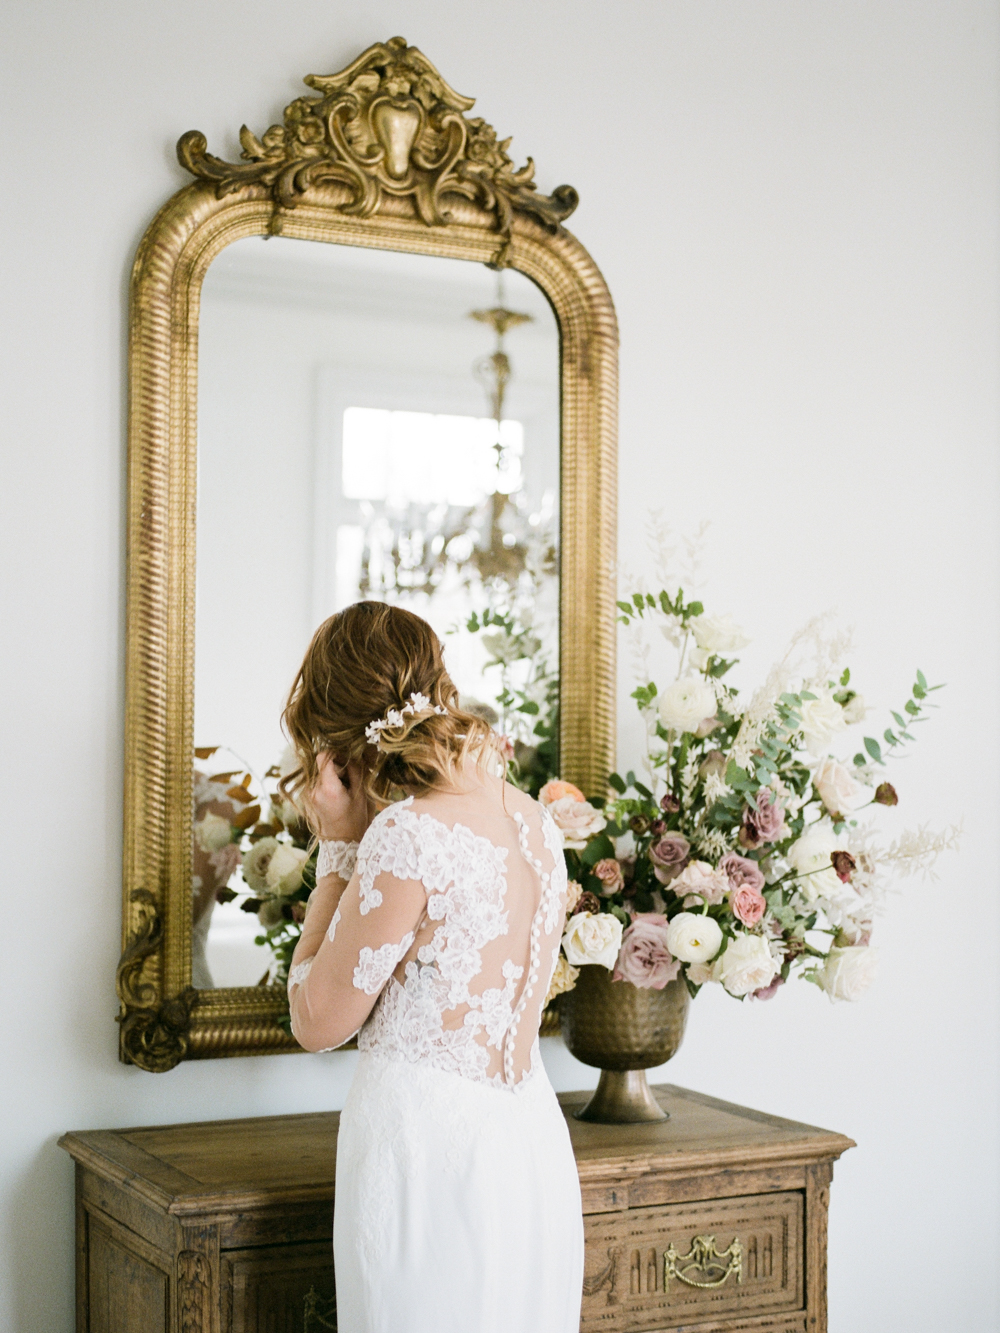 Christine Gosch - destination film photographer - houston wedding photographer - fine art film photographer - elopement photographer - destination wedding - understated wedding - simple beautiful wedding photography-121.jpg